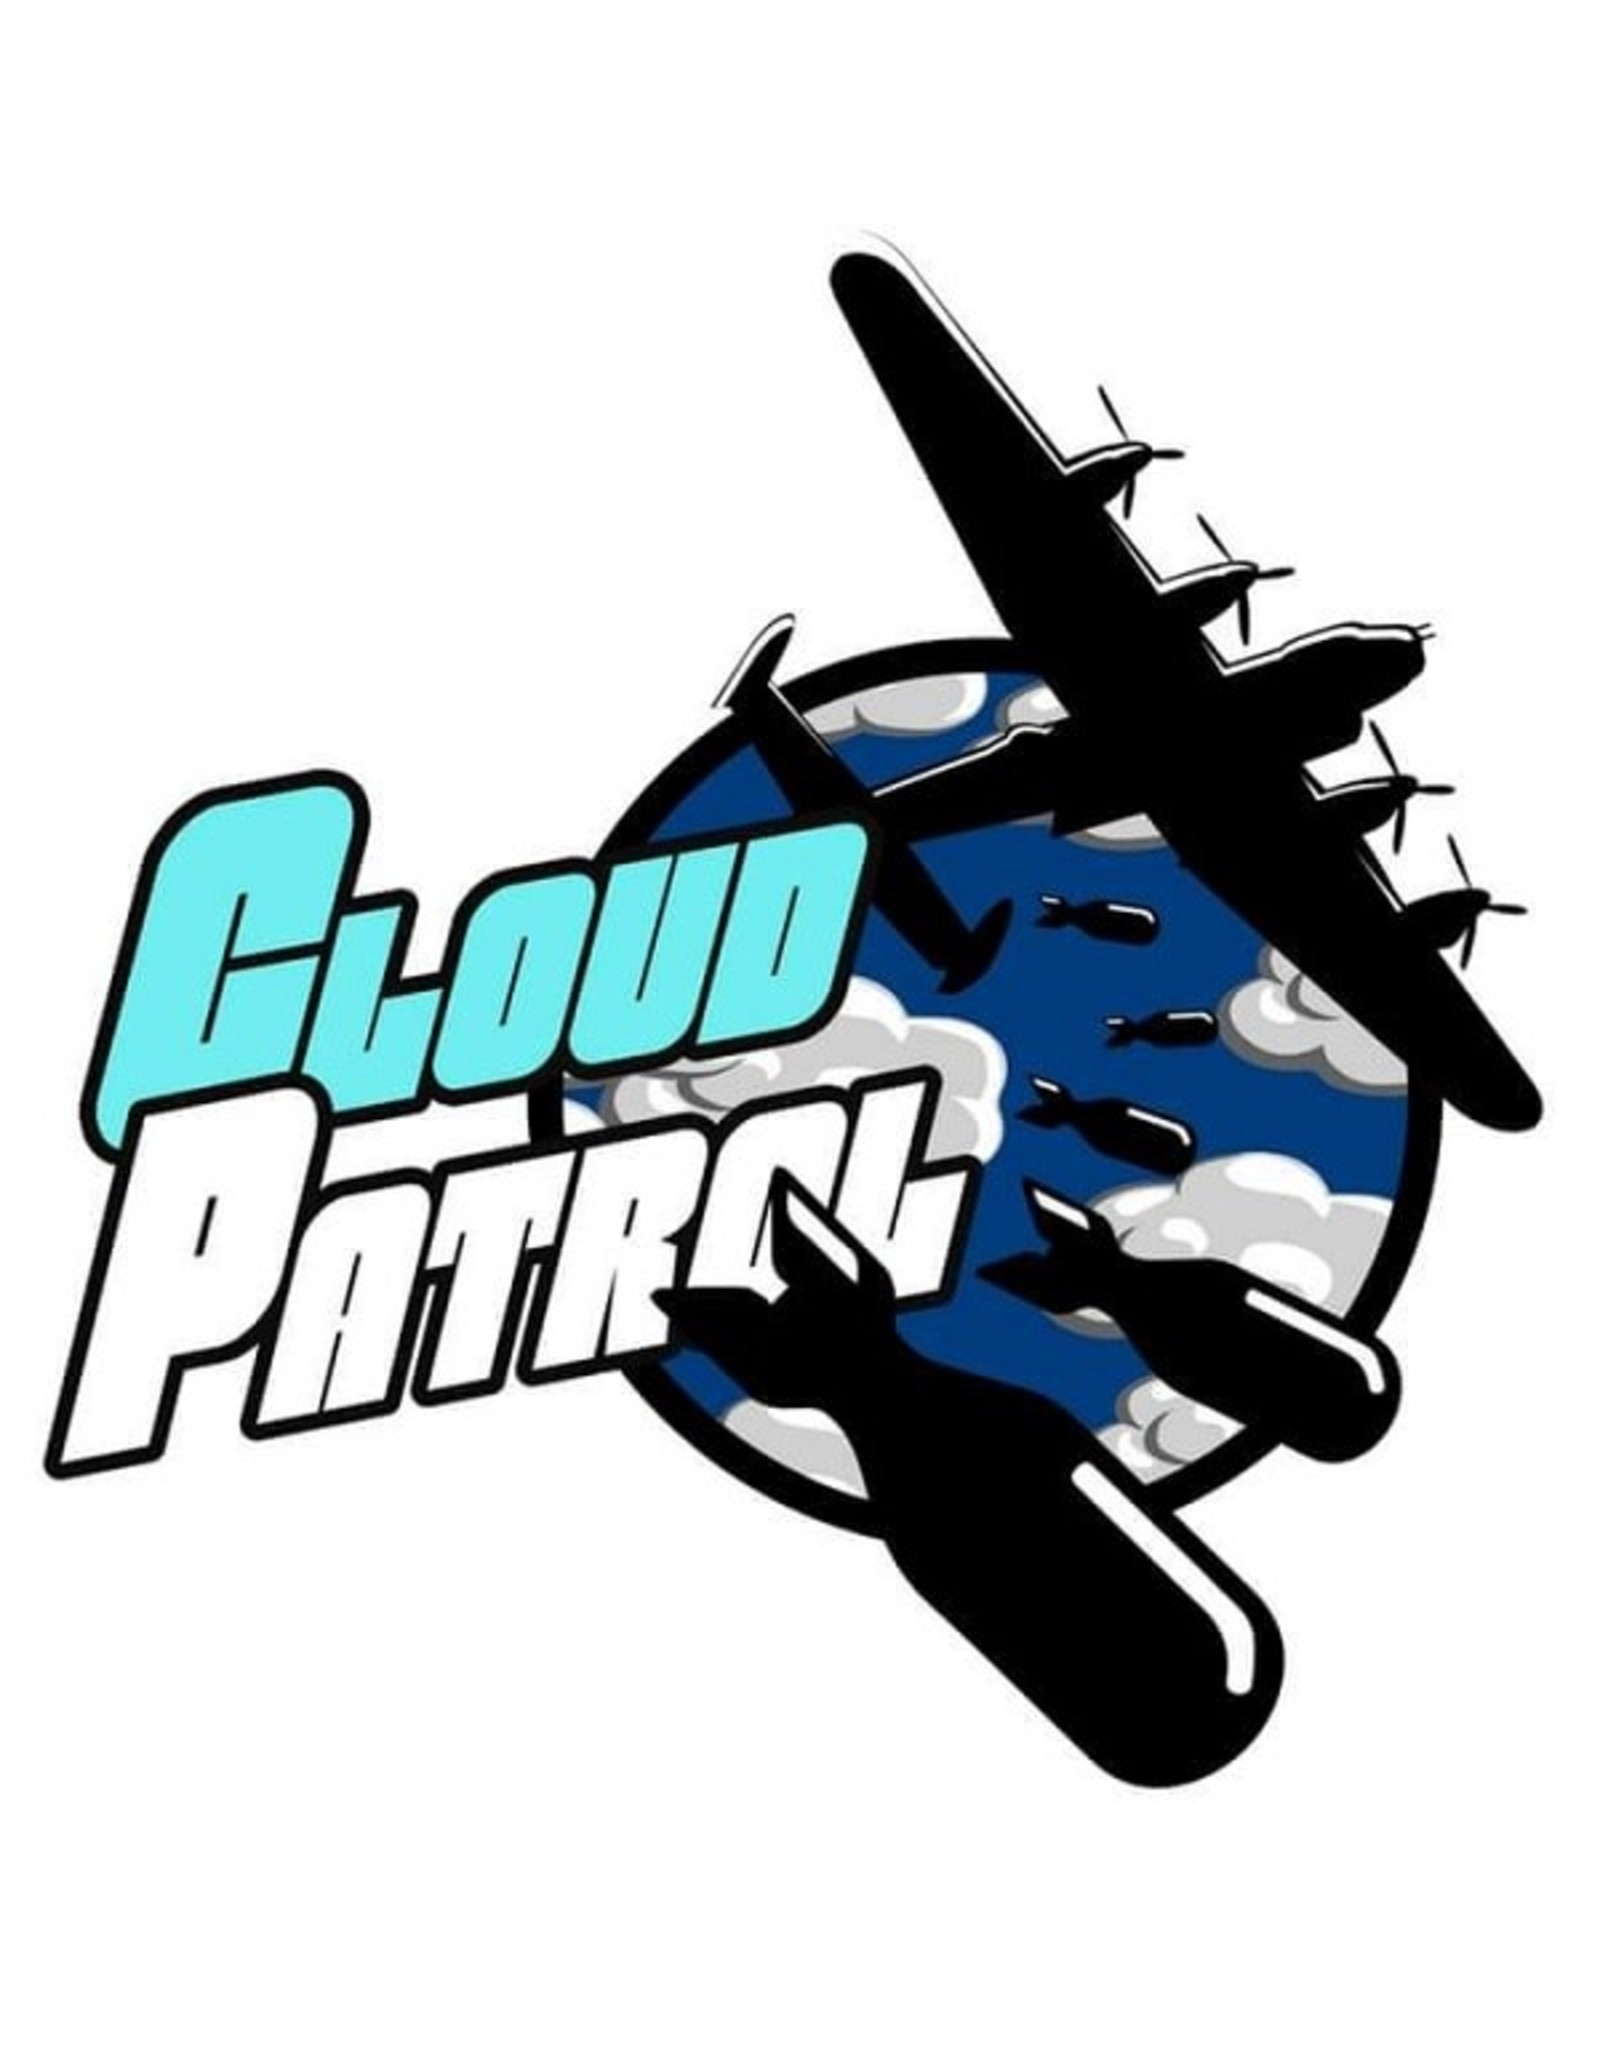 Cloud Vapory Cloud Patrol E-liquids